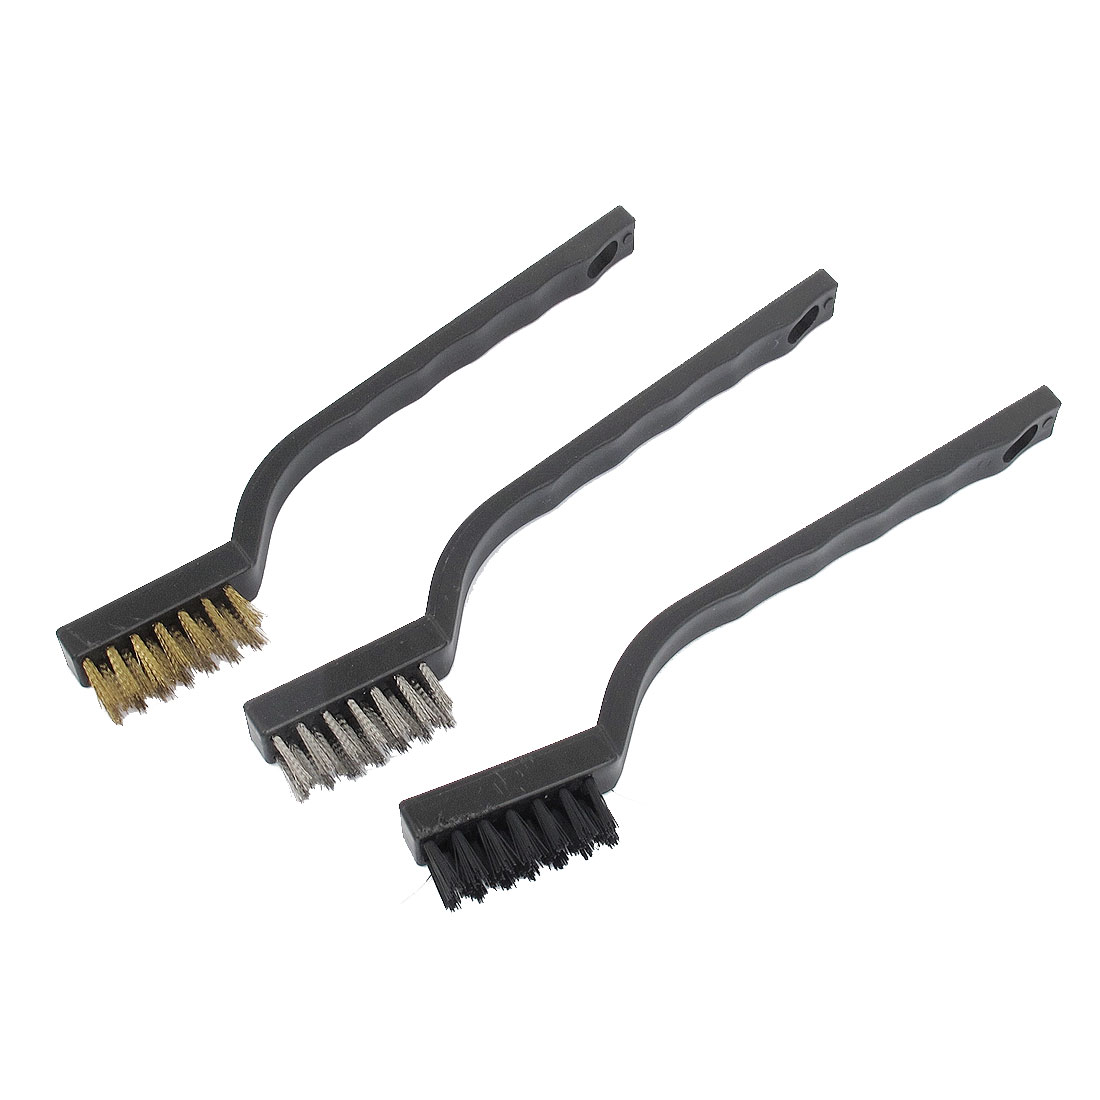 17.5cm Length Plastic Handle Stainless Steel Brass Nylon Wire Cleaning Brush Set 3 Pcs